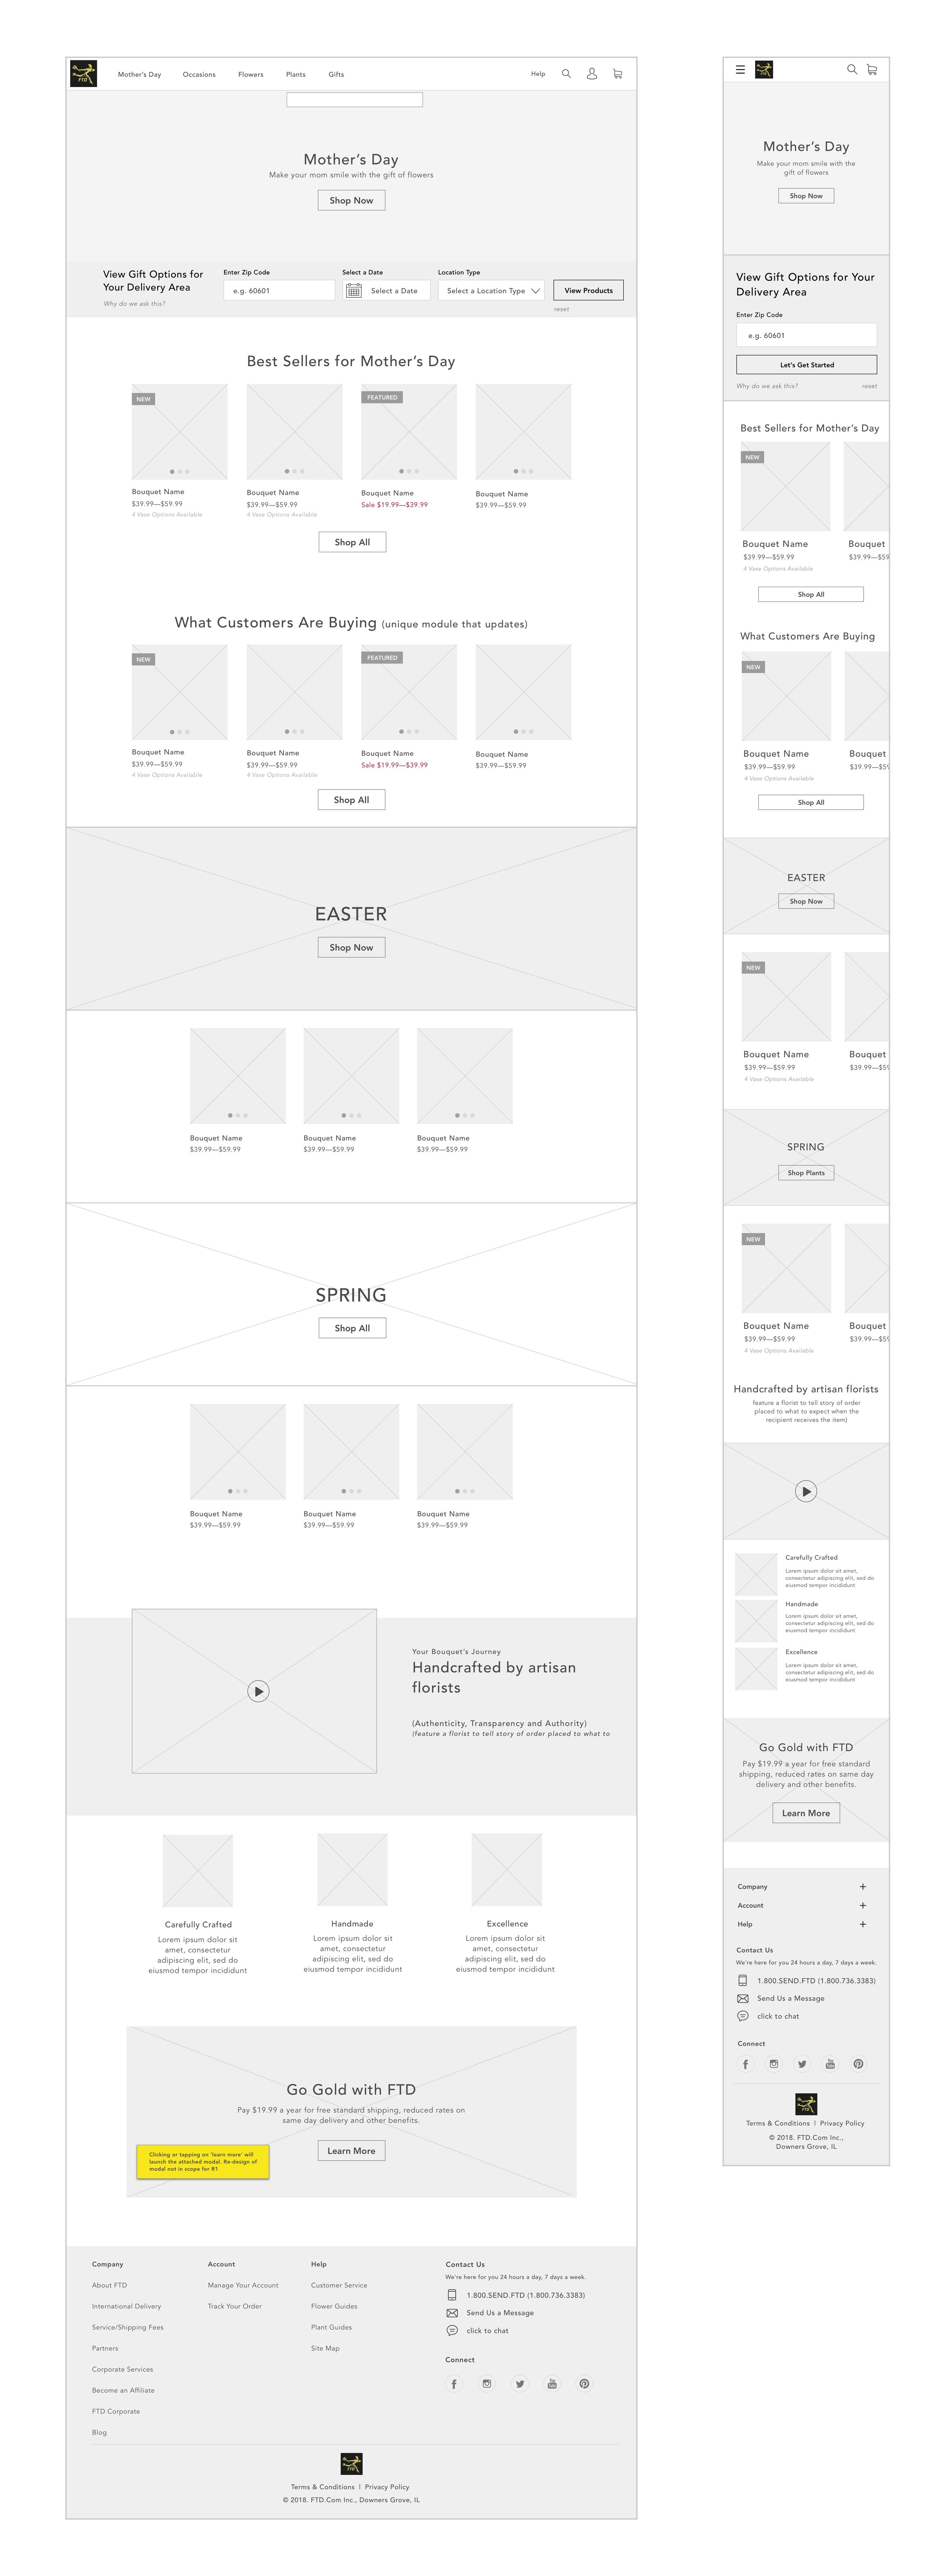 FTD Homepage Wireframe